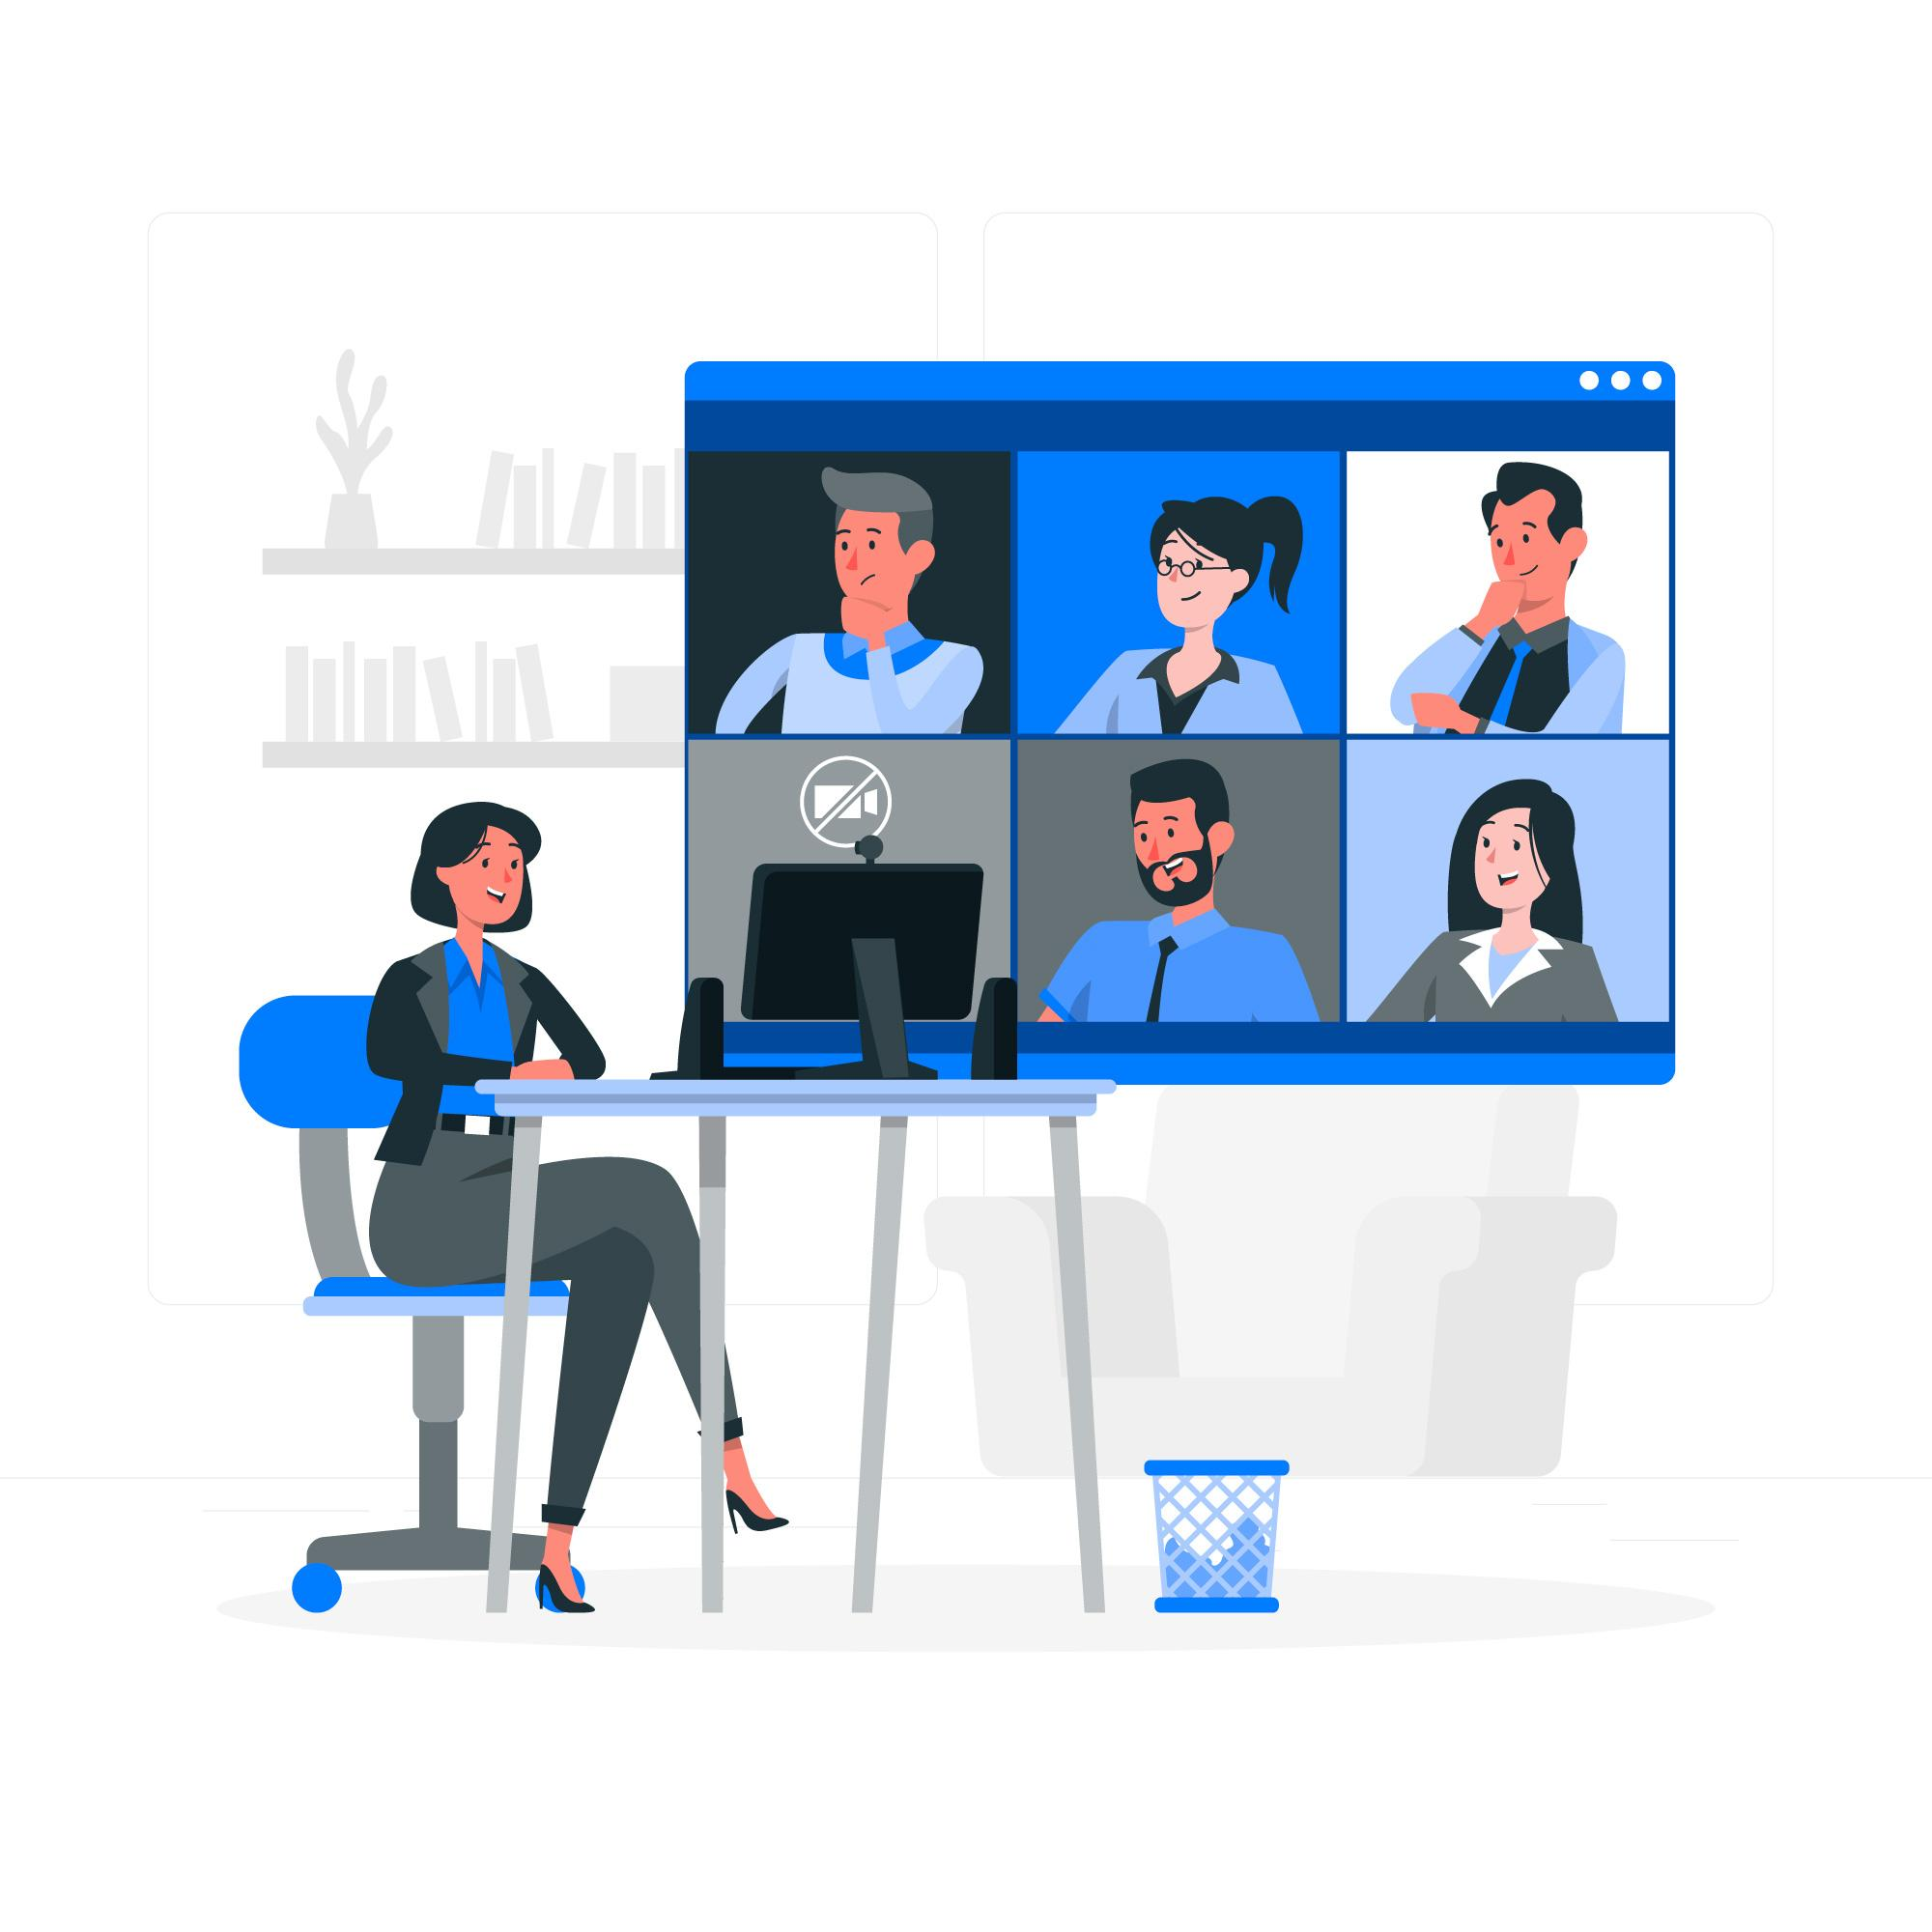 Illustration of a group of people meeting virtually by Zoom